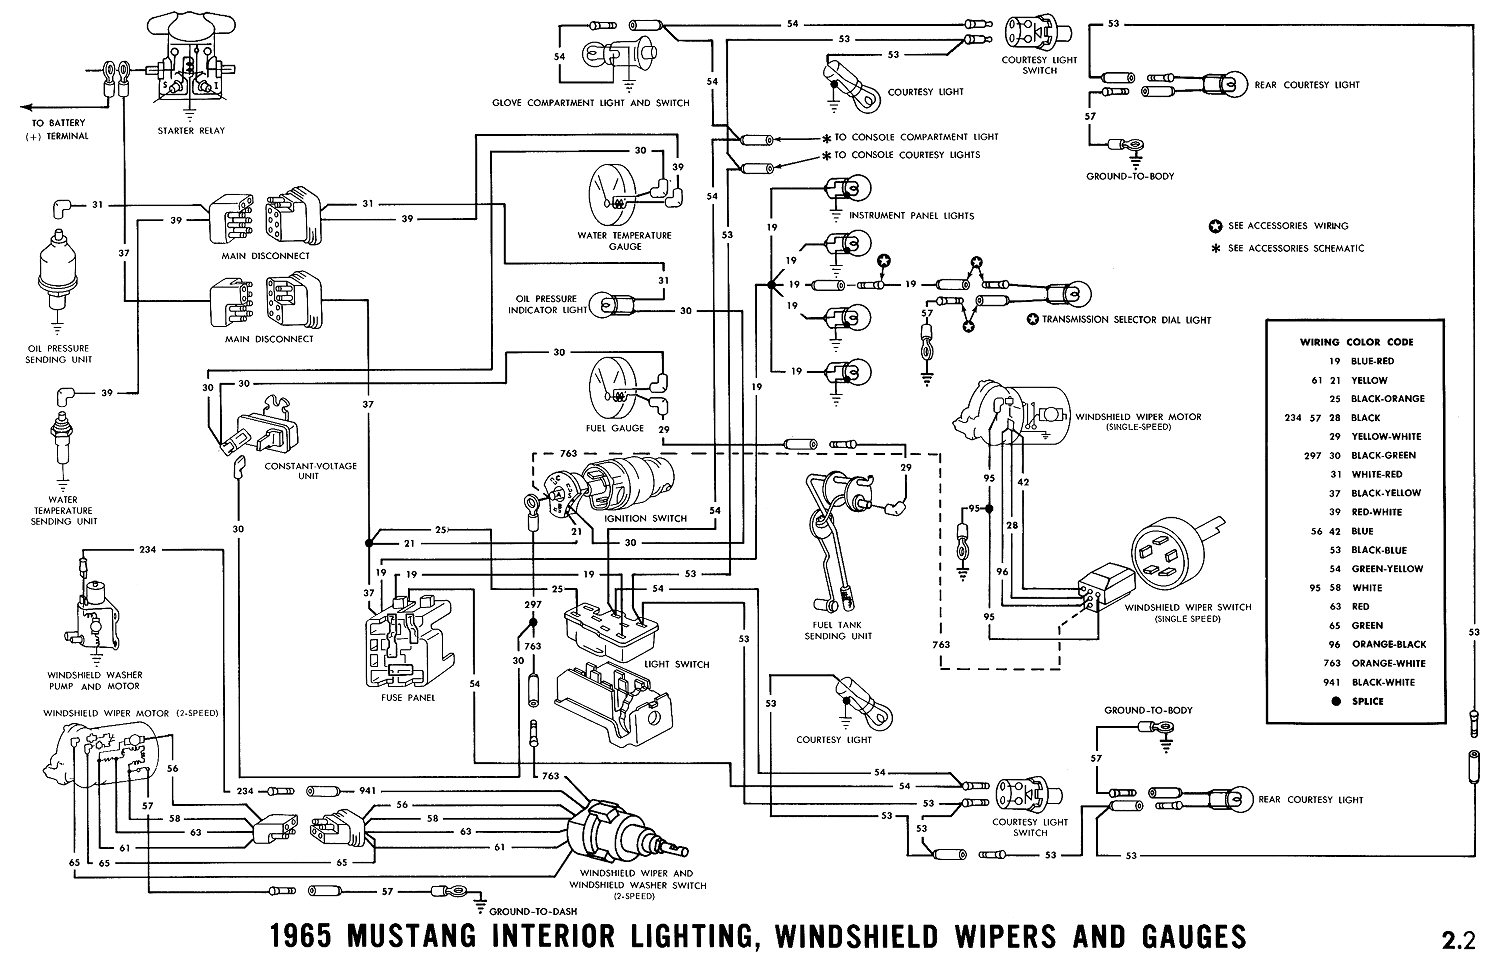 2002 Mercury Cougar Fuse Box Location Wiring Library Light Circuit Diagram Australia 1965 Mustang Diagrams Average Joe Restoration 1999